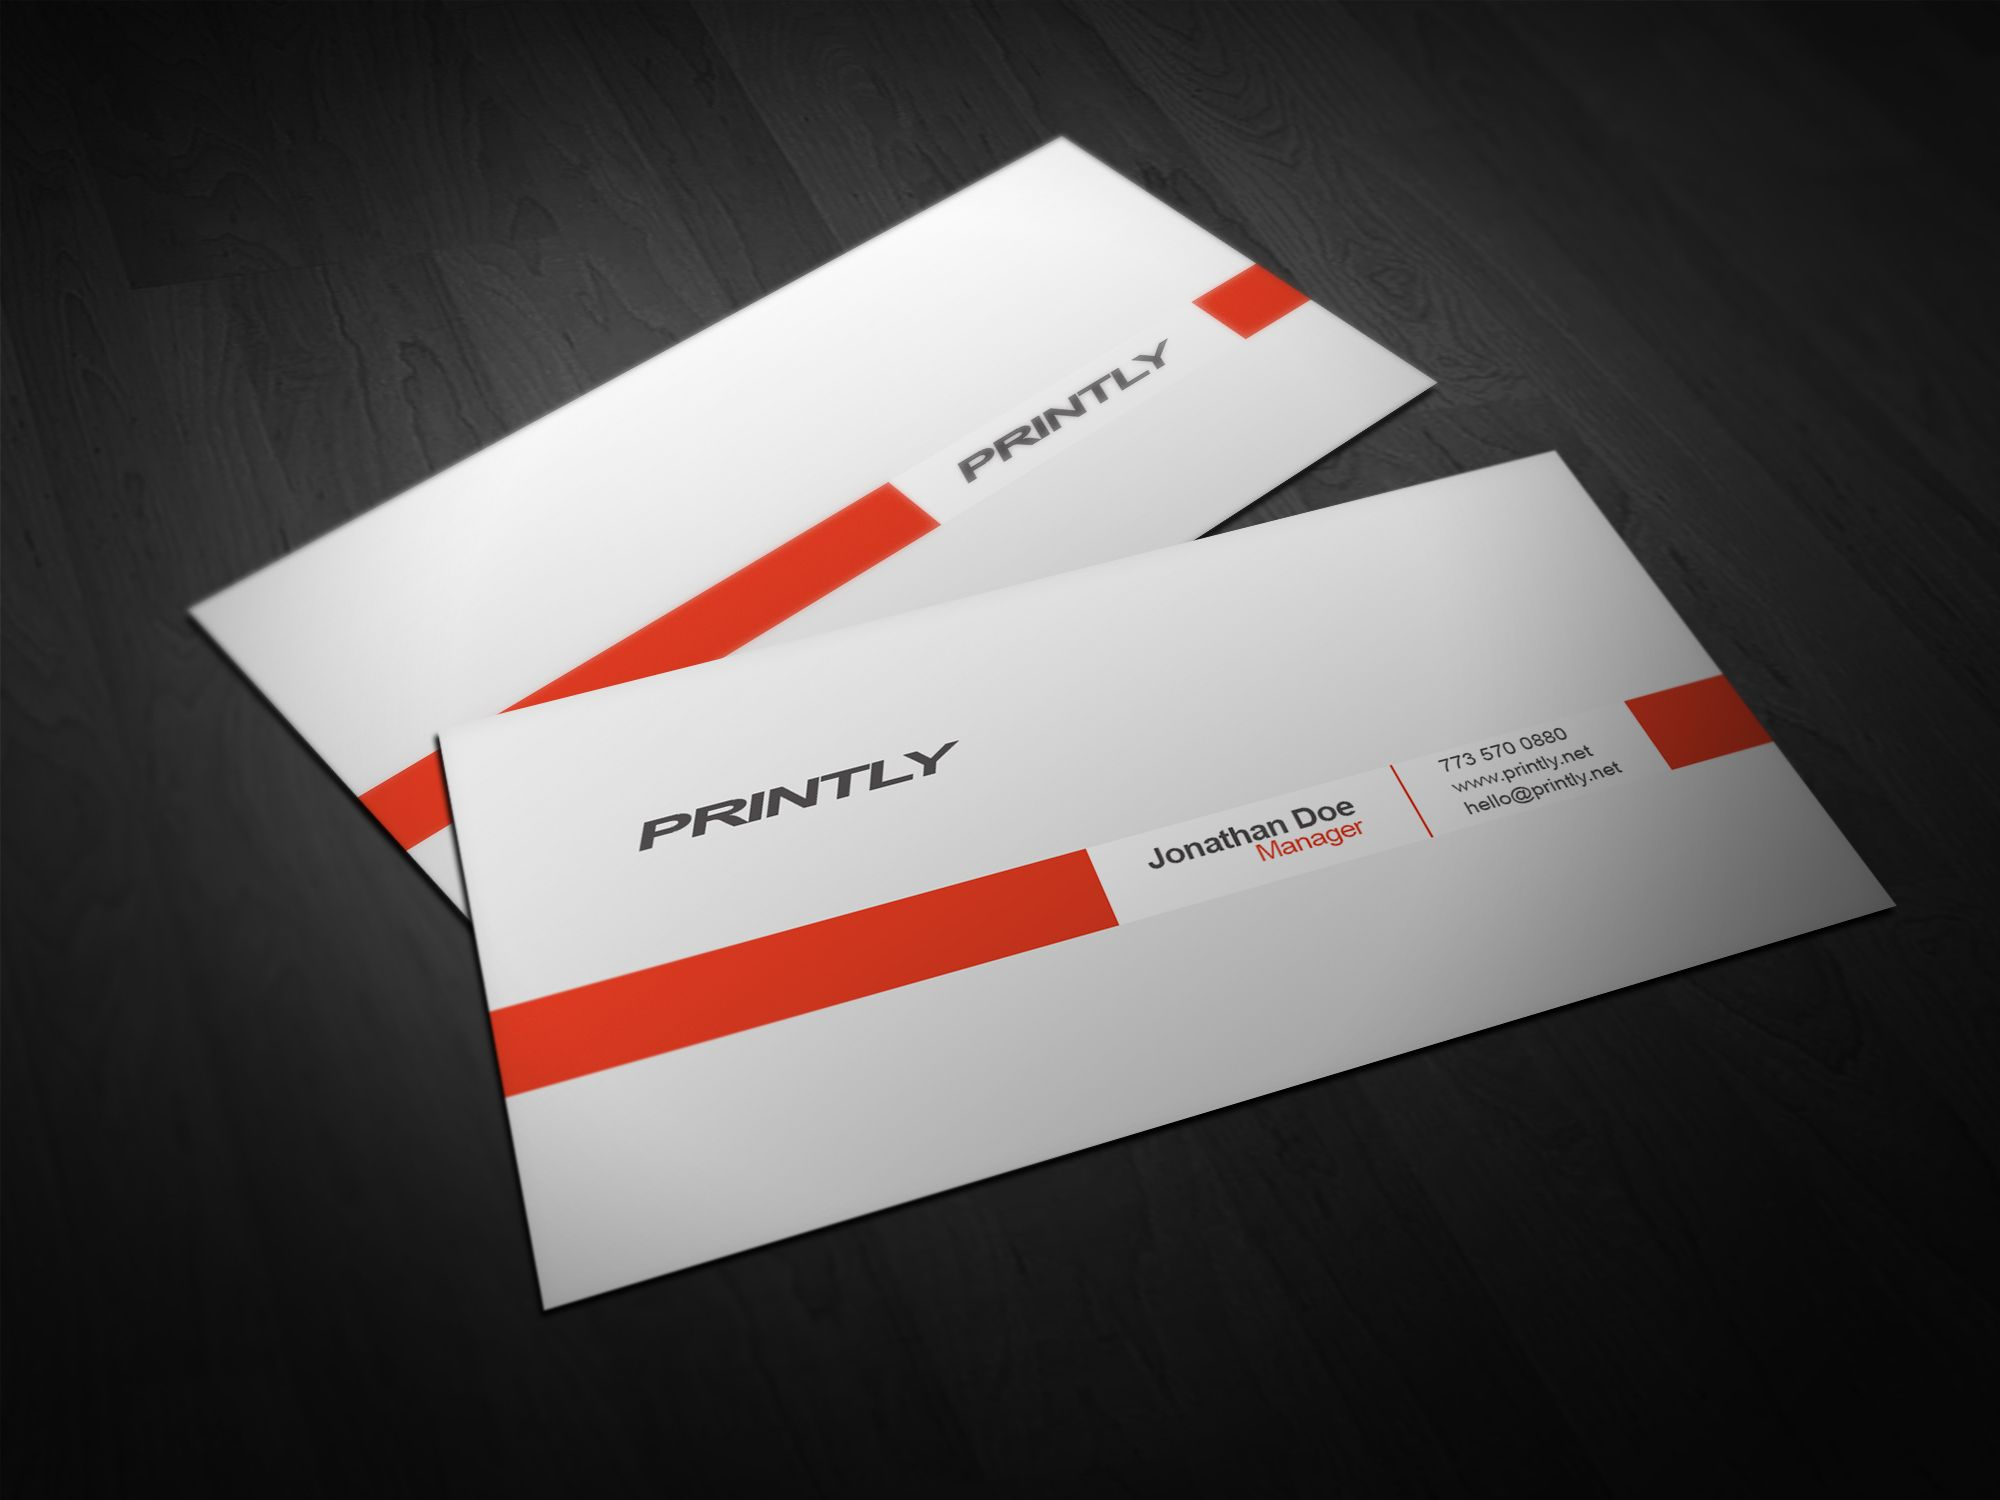 Free Printly PSD Business Card Template PRINTLY Design - Template for business cards free